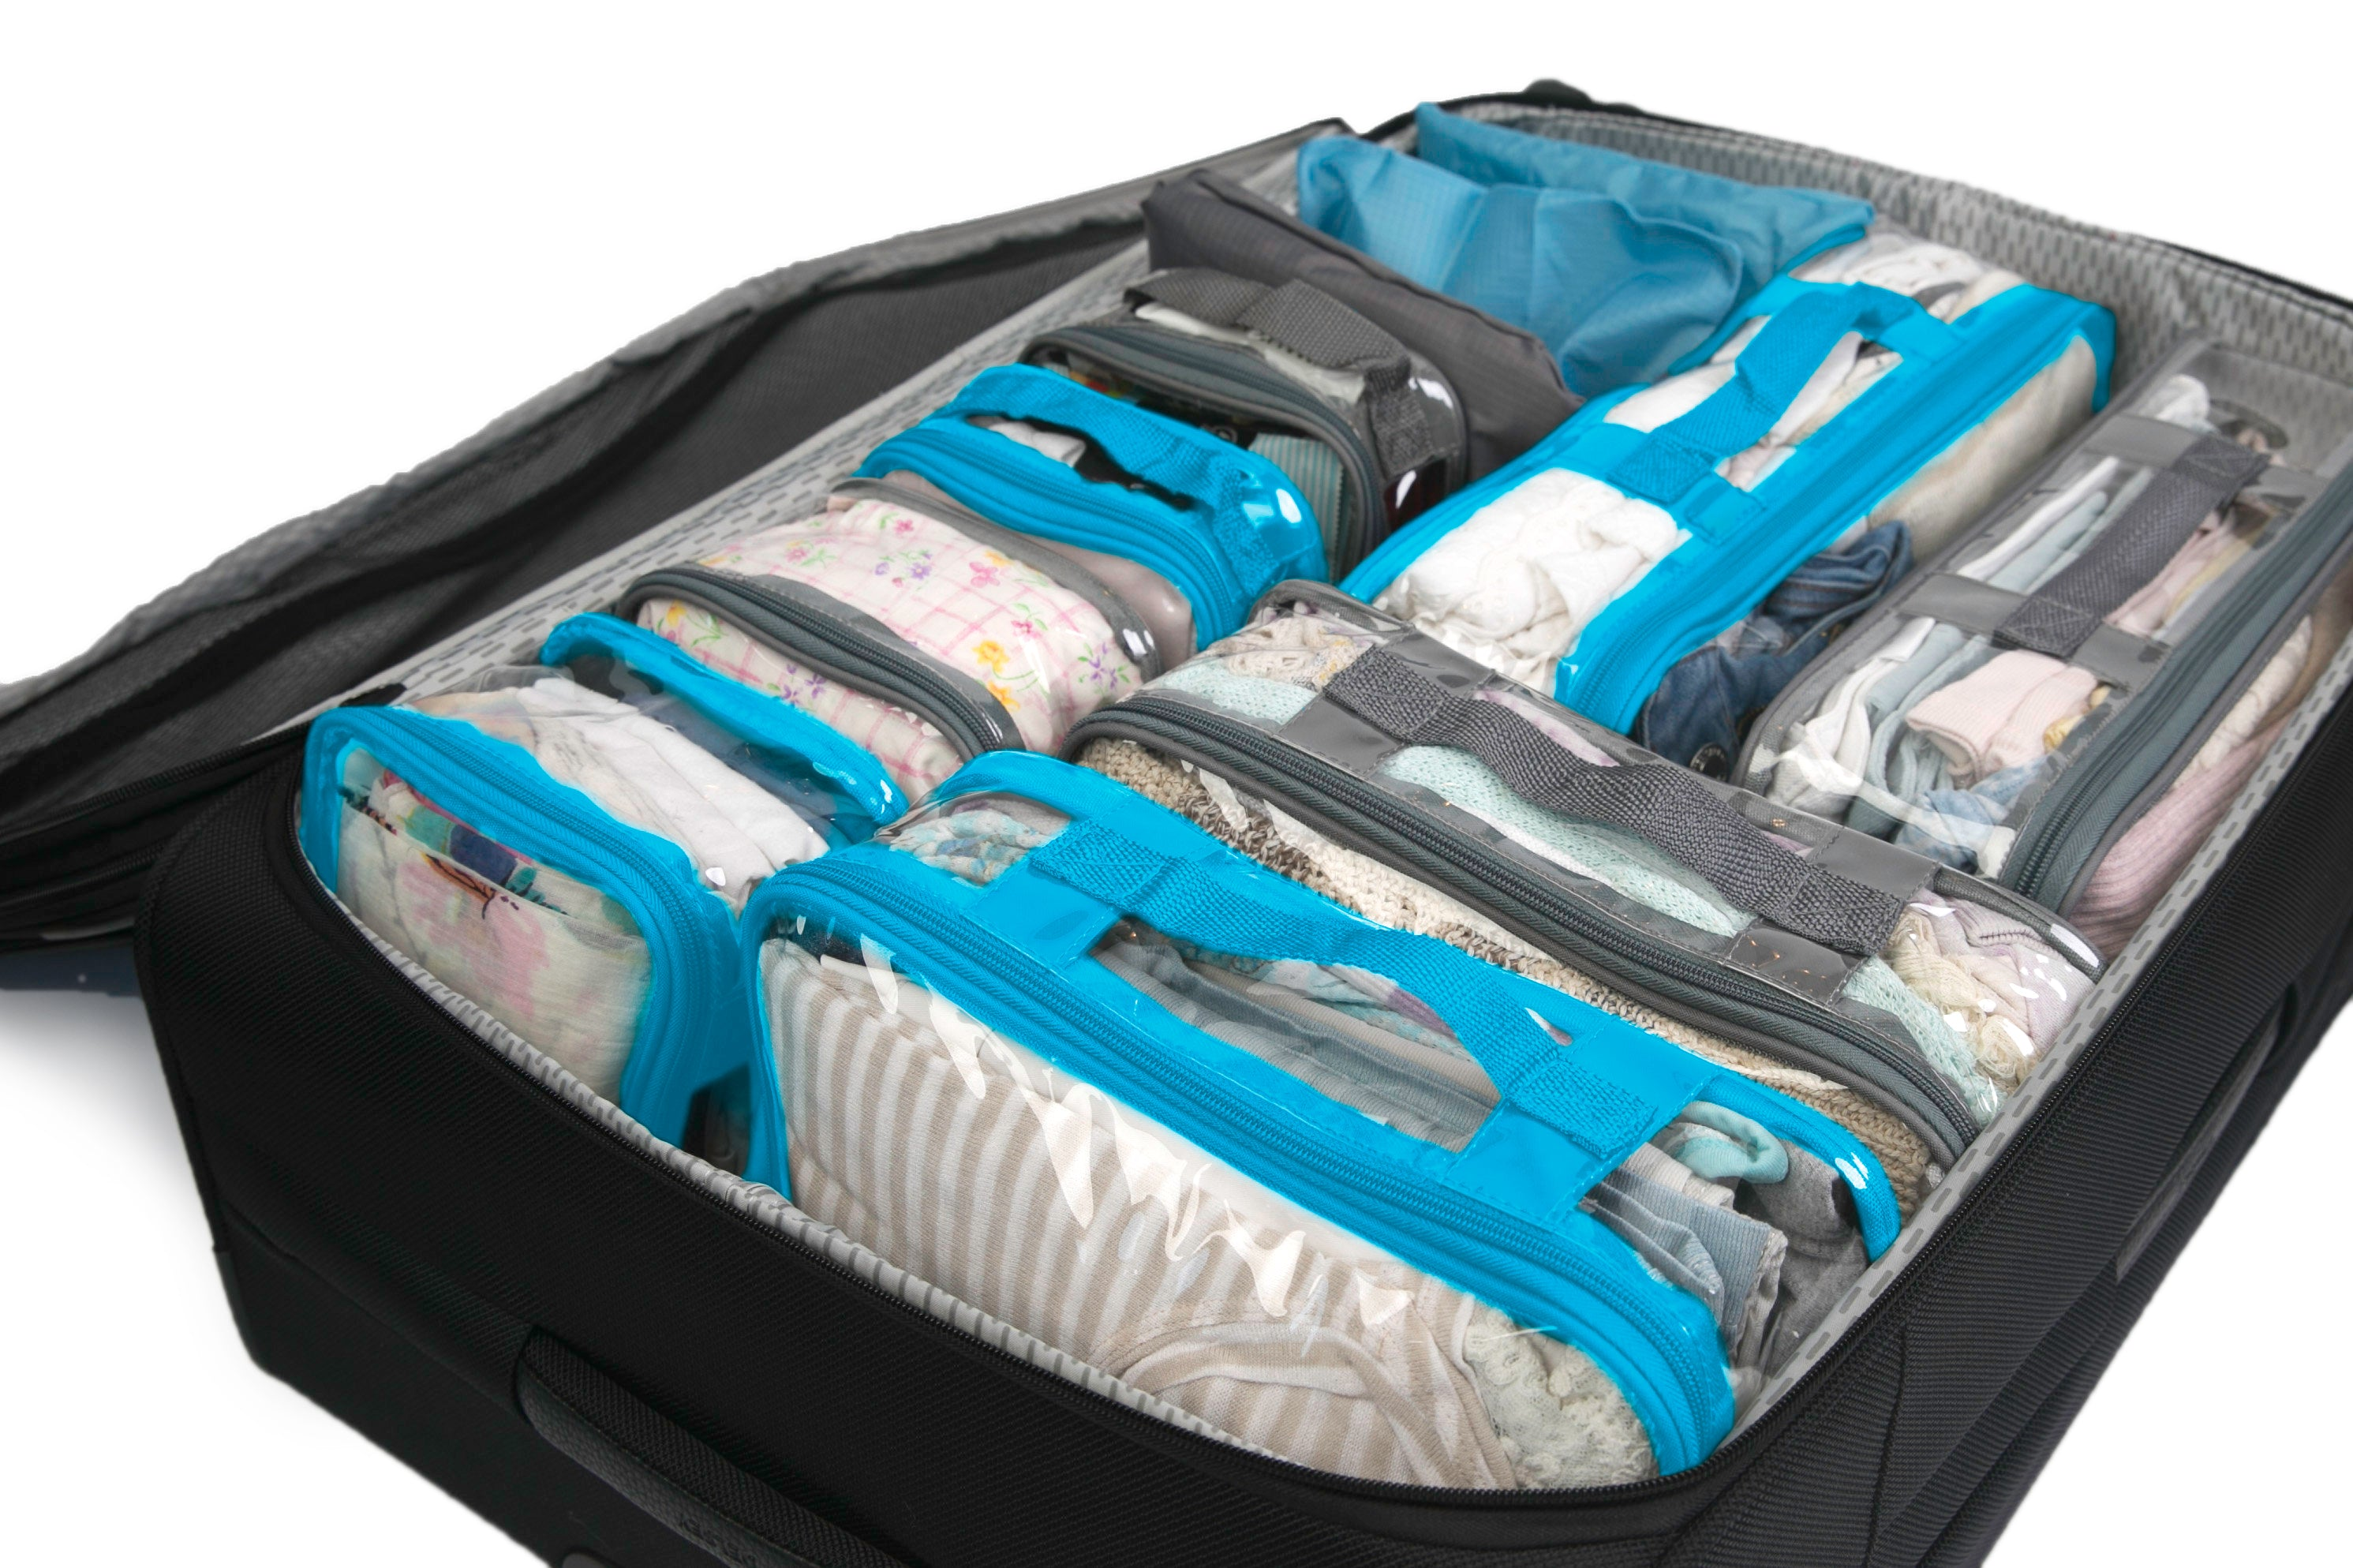 Grey and blue Packing cubes inside an organized suitcase